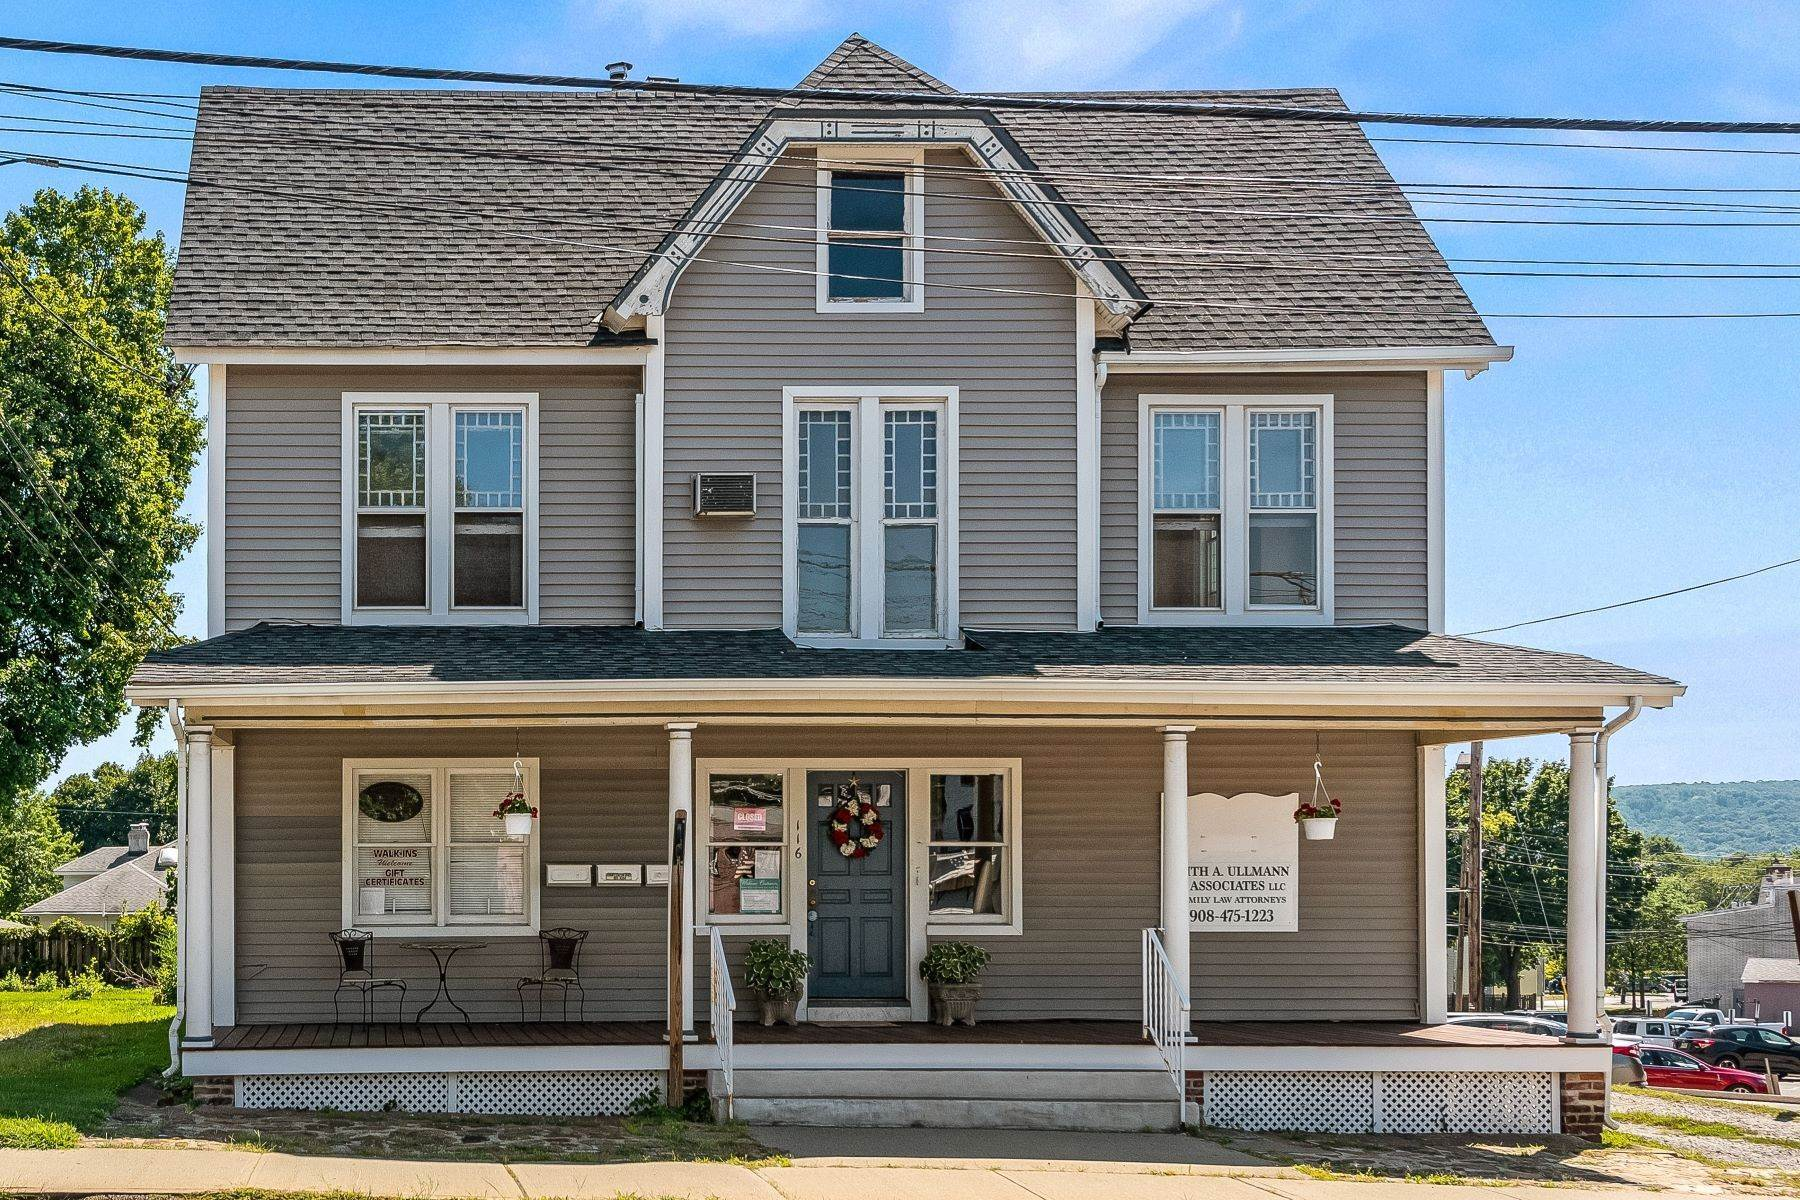 Single Family Homes for Sale at Great Opportunity! 116 High Street Hackettstown, New Jersey 07840 United States